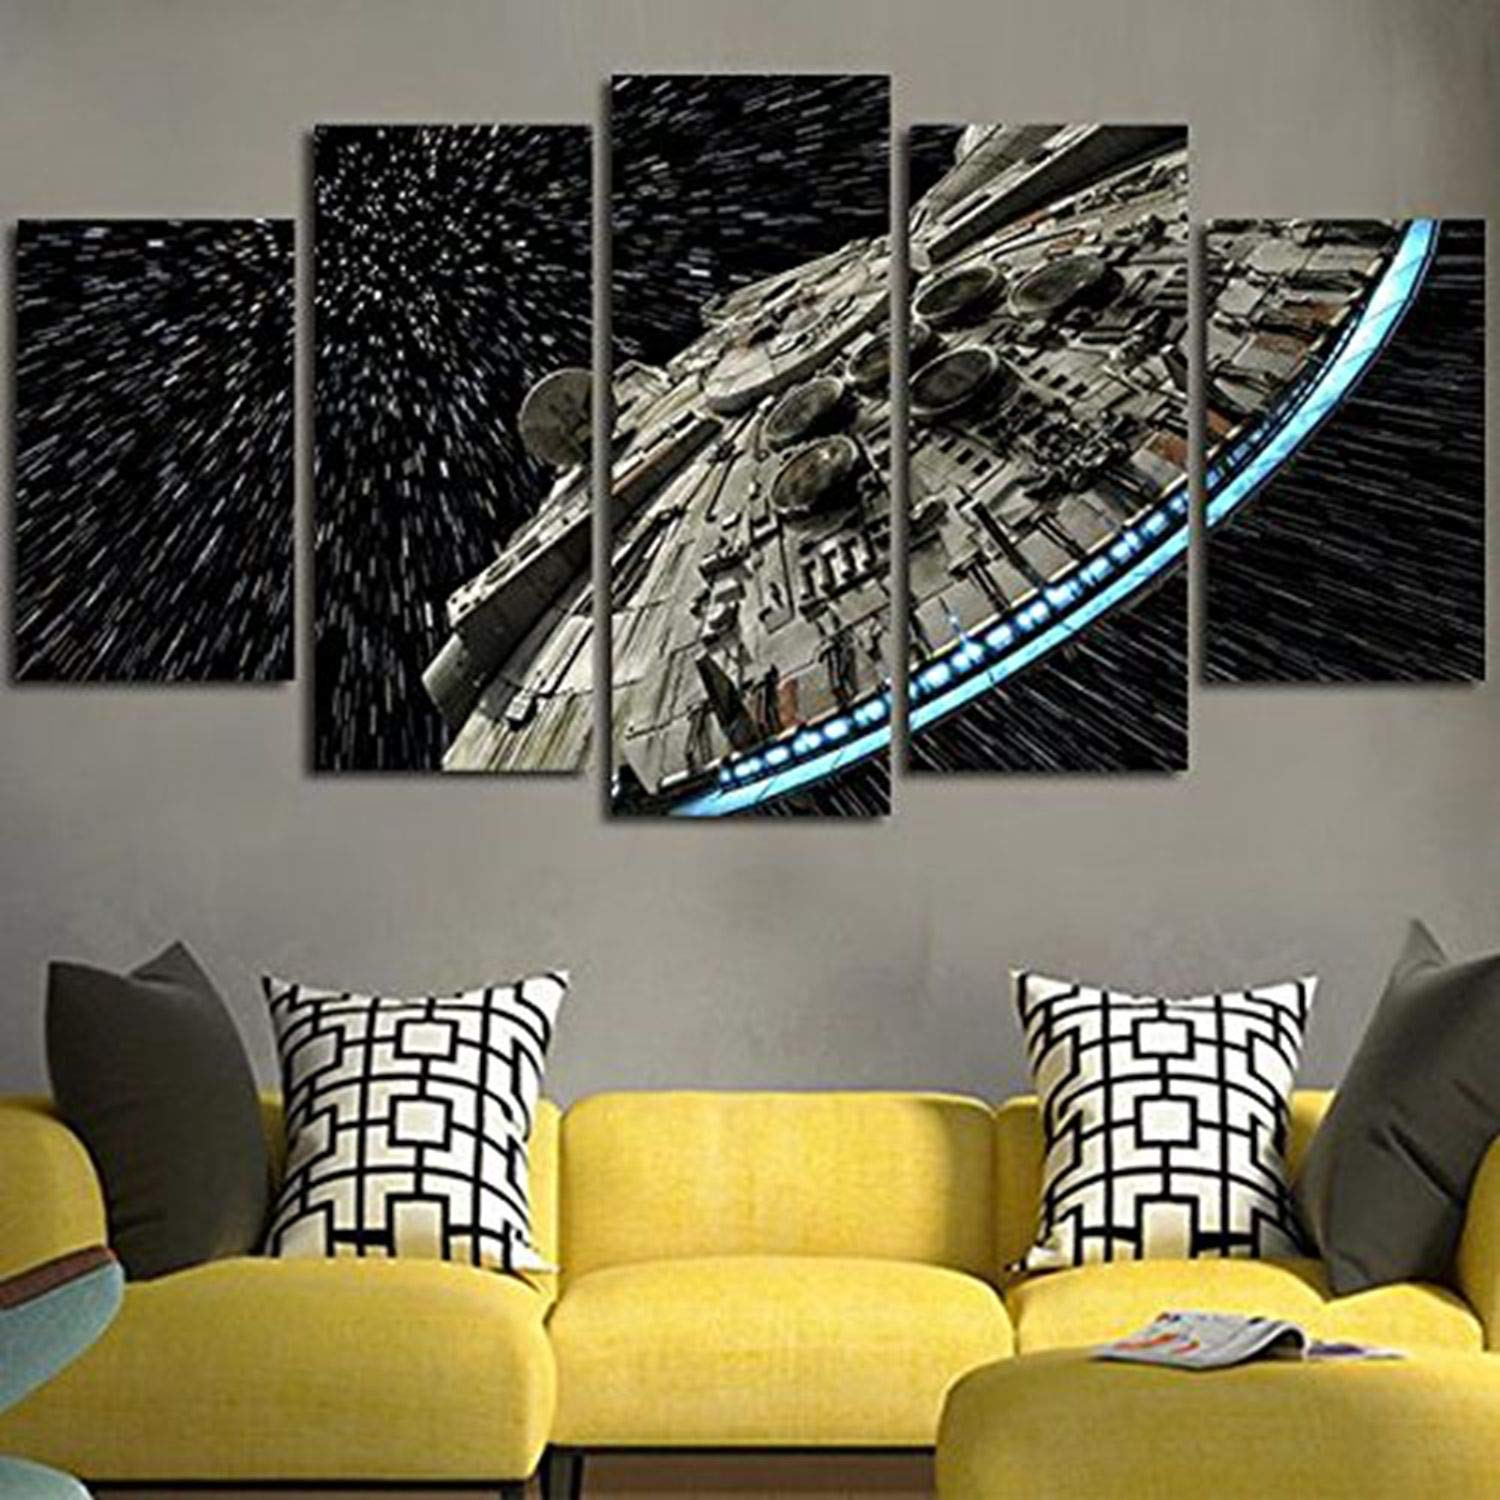 JESC Wall Decor Canvas Picture Batman Poster 5 Pieces Art Home Framed HD Printed Canvas Painting (30x40cmx2,30x60cmx2,30x80cmx1)